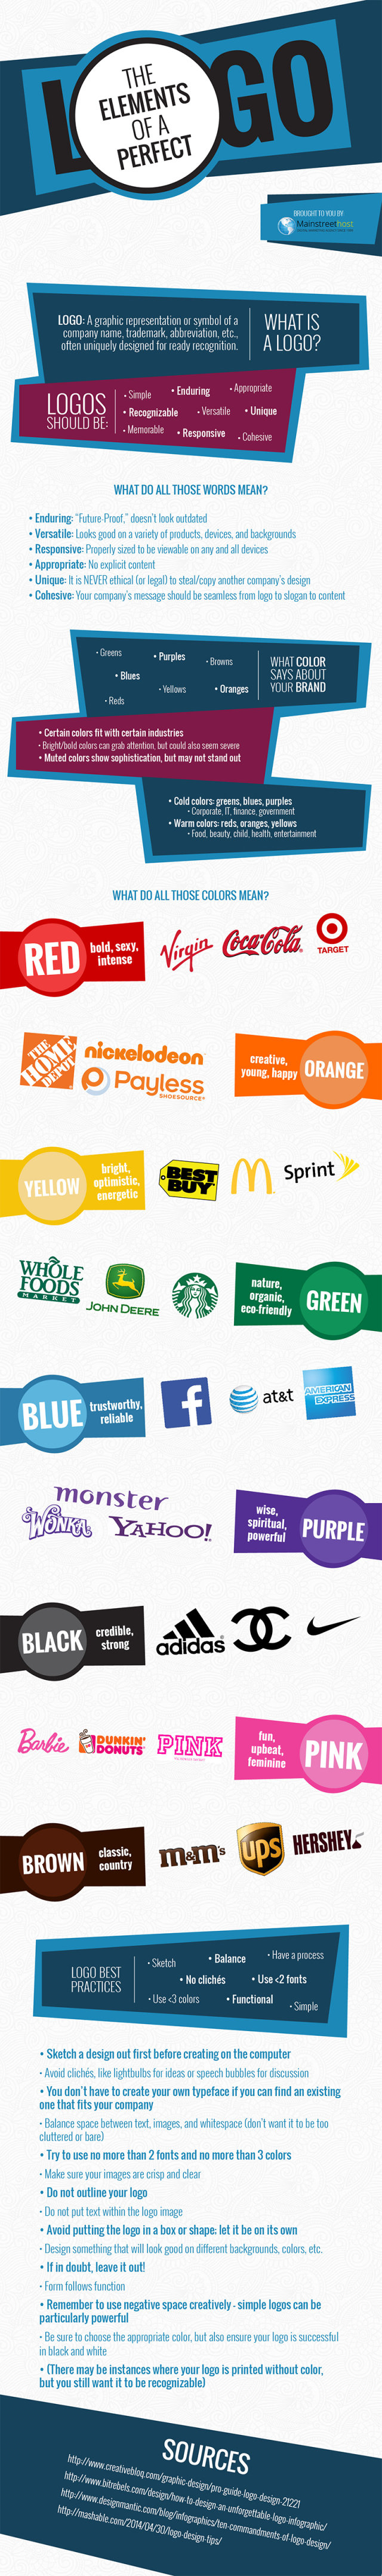 Is Your Logo Design Any Good? This Guide Will Tell You #Infographic